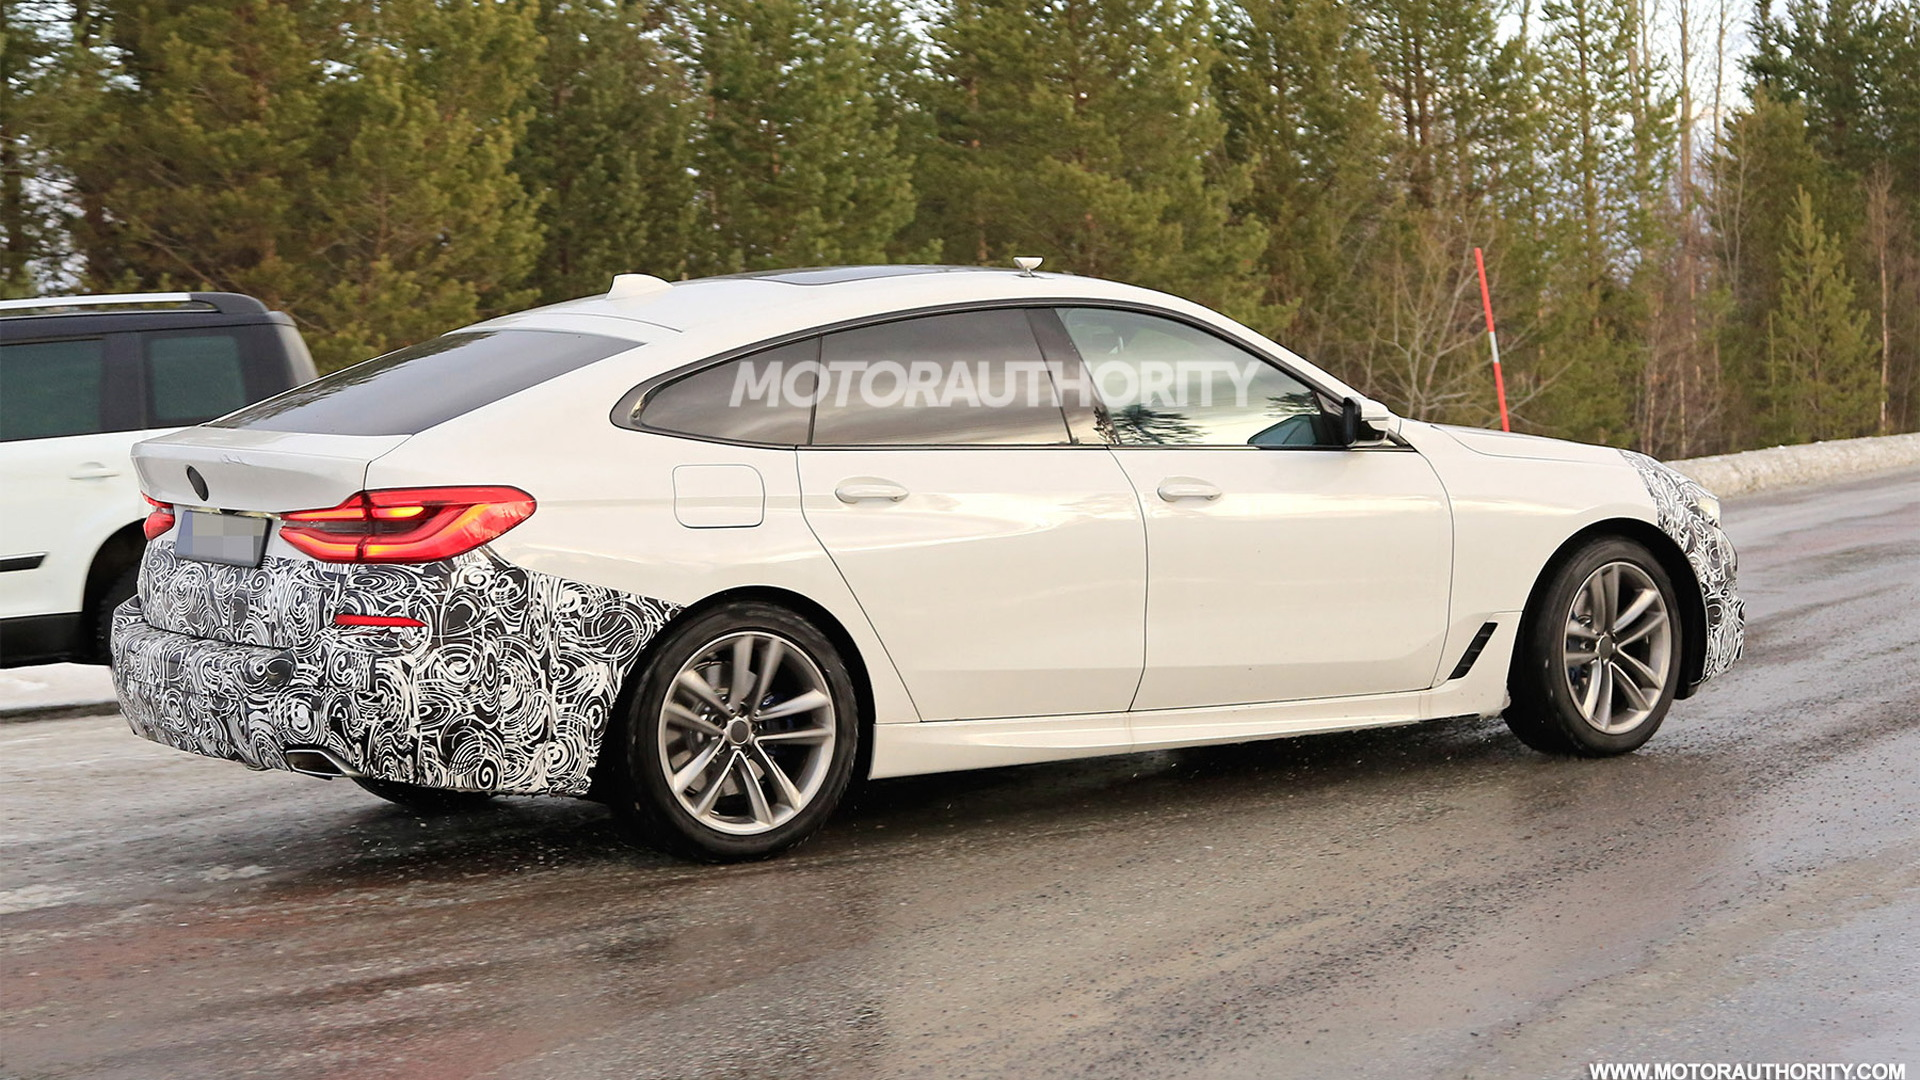 2021 BMW 6-Series Gran Turismo facelift spy shots - Photo credit: S. Baldauf/SB-Medien